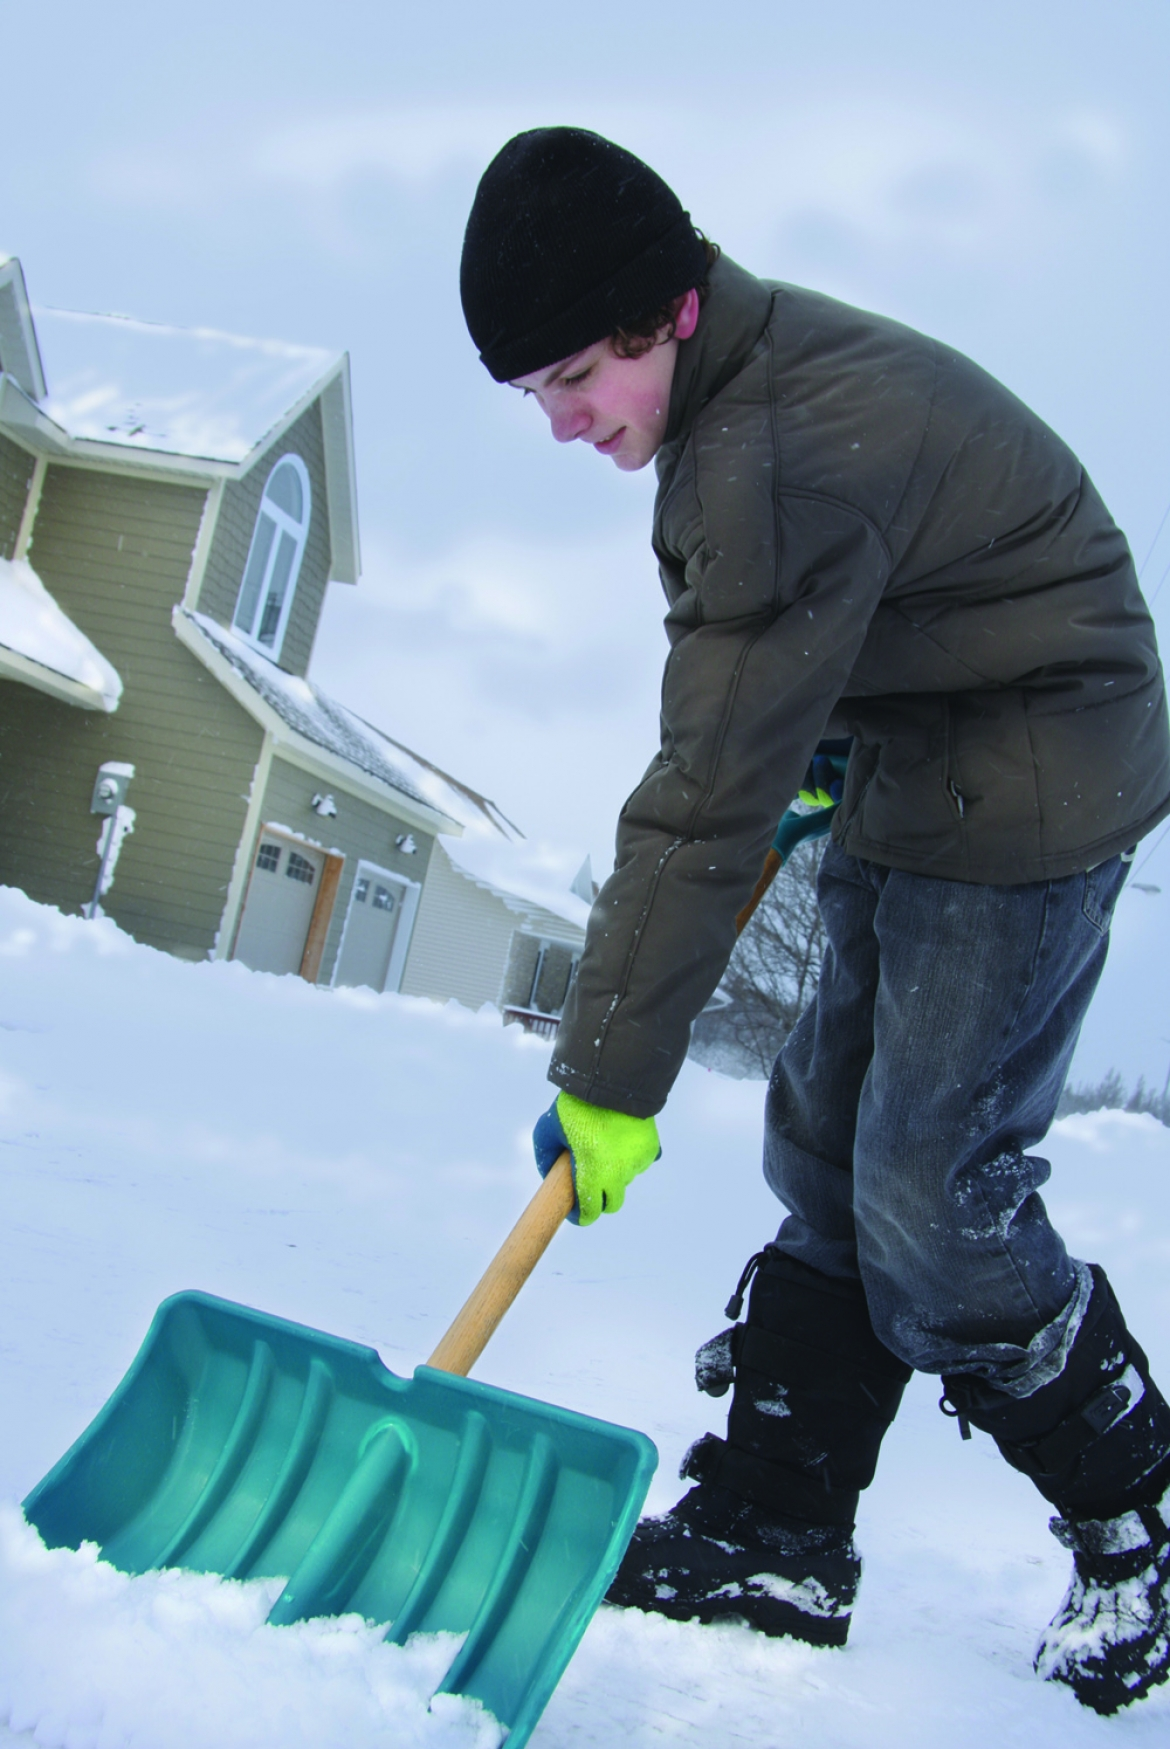 Green ways to clean up snow